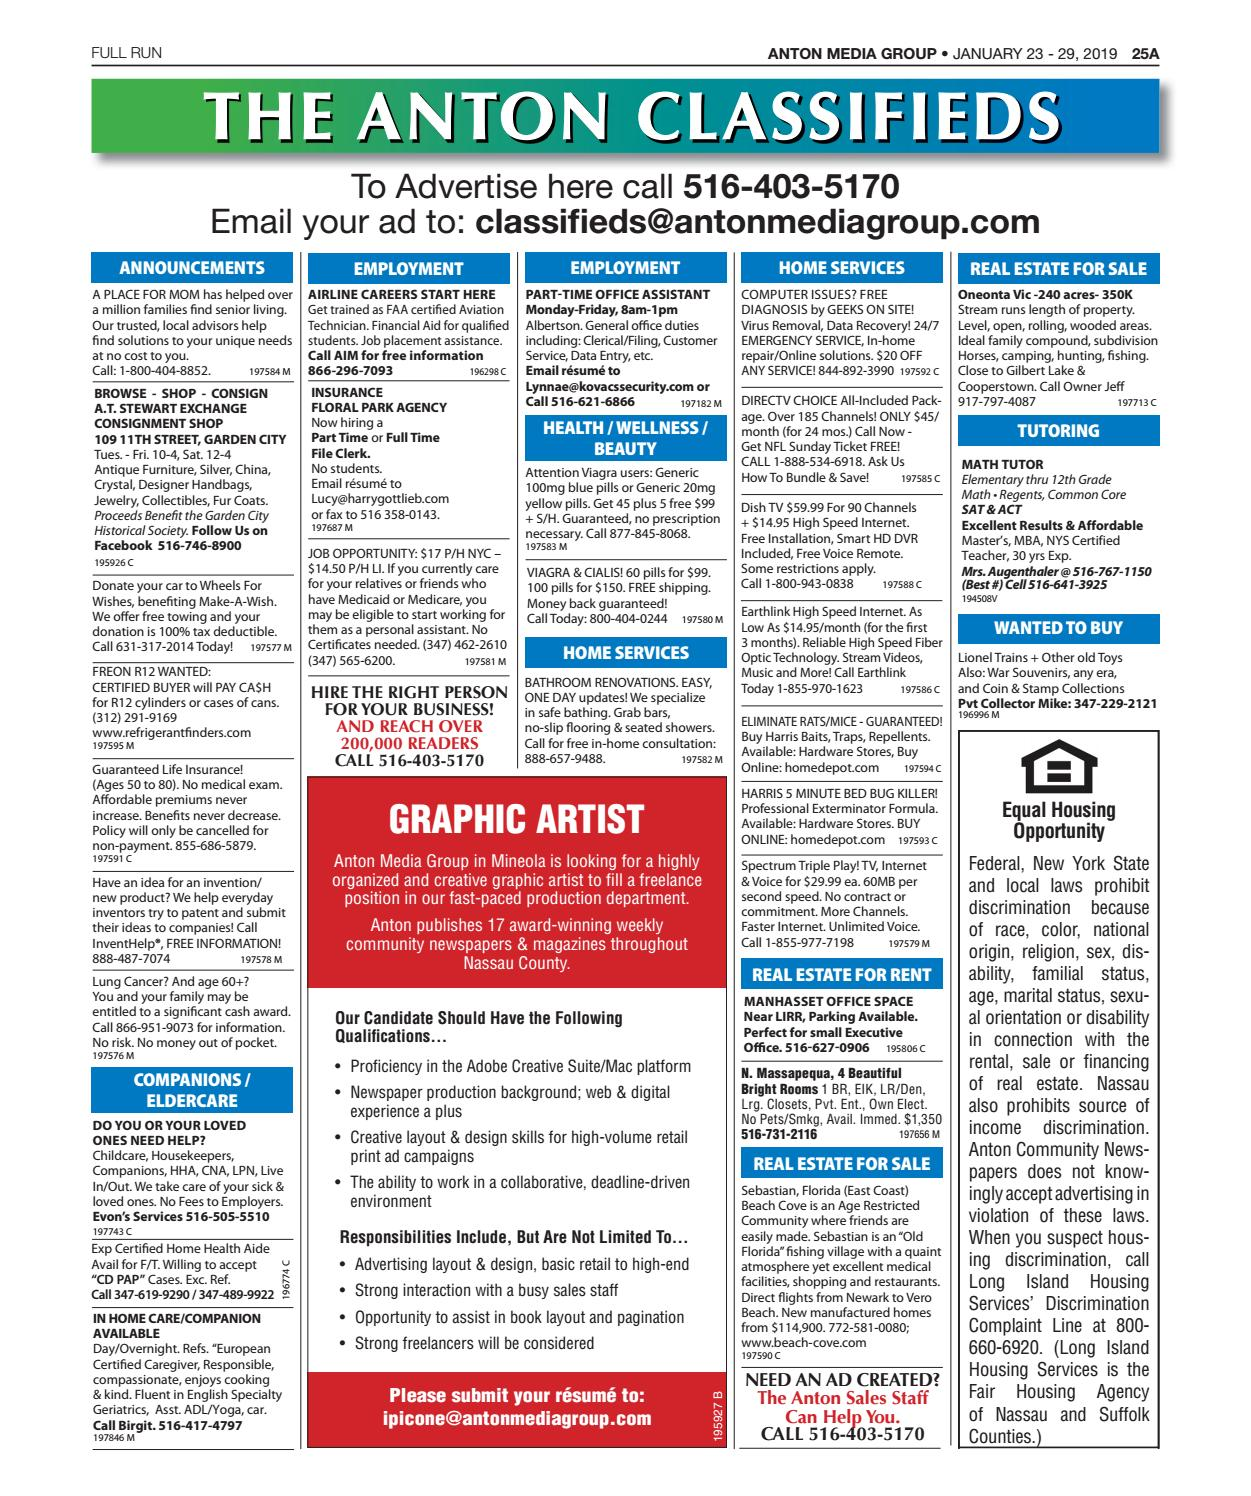 Classifieds 01-23-19 by Anton Community Newspapers - issuu